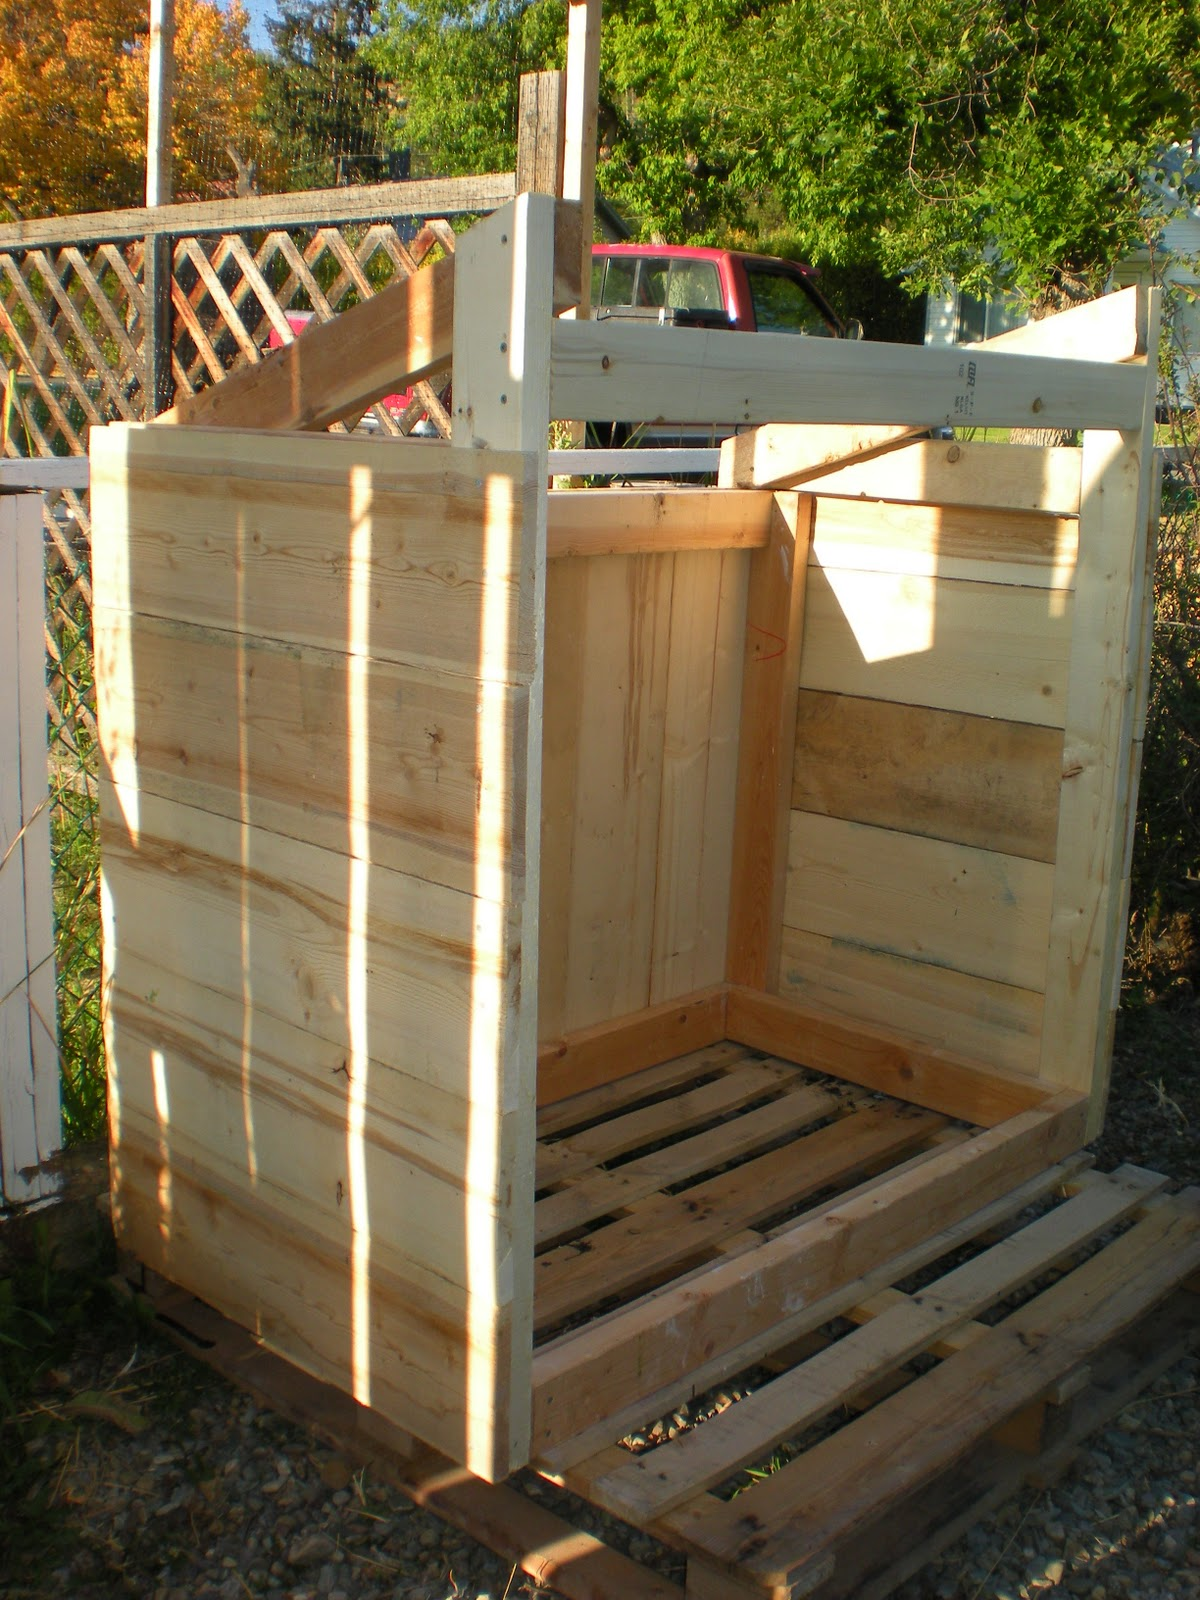 Designdreams By Anne The Mini Shed Project Aka I Built A